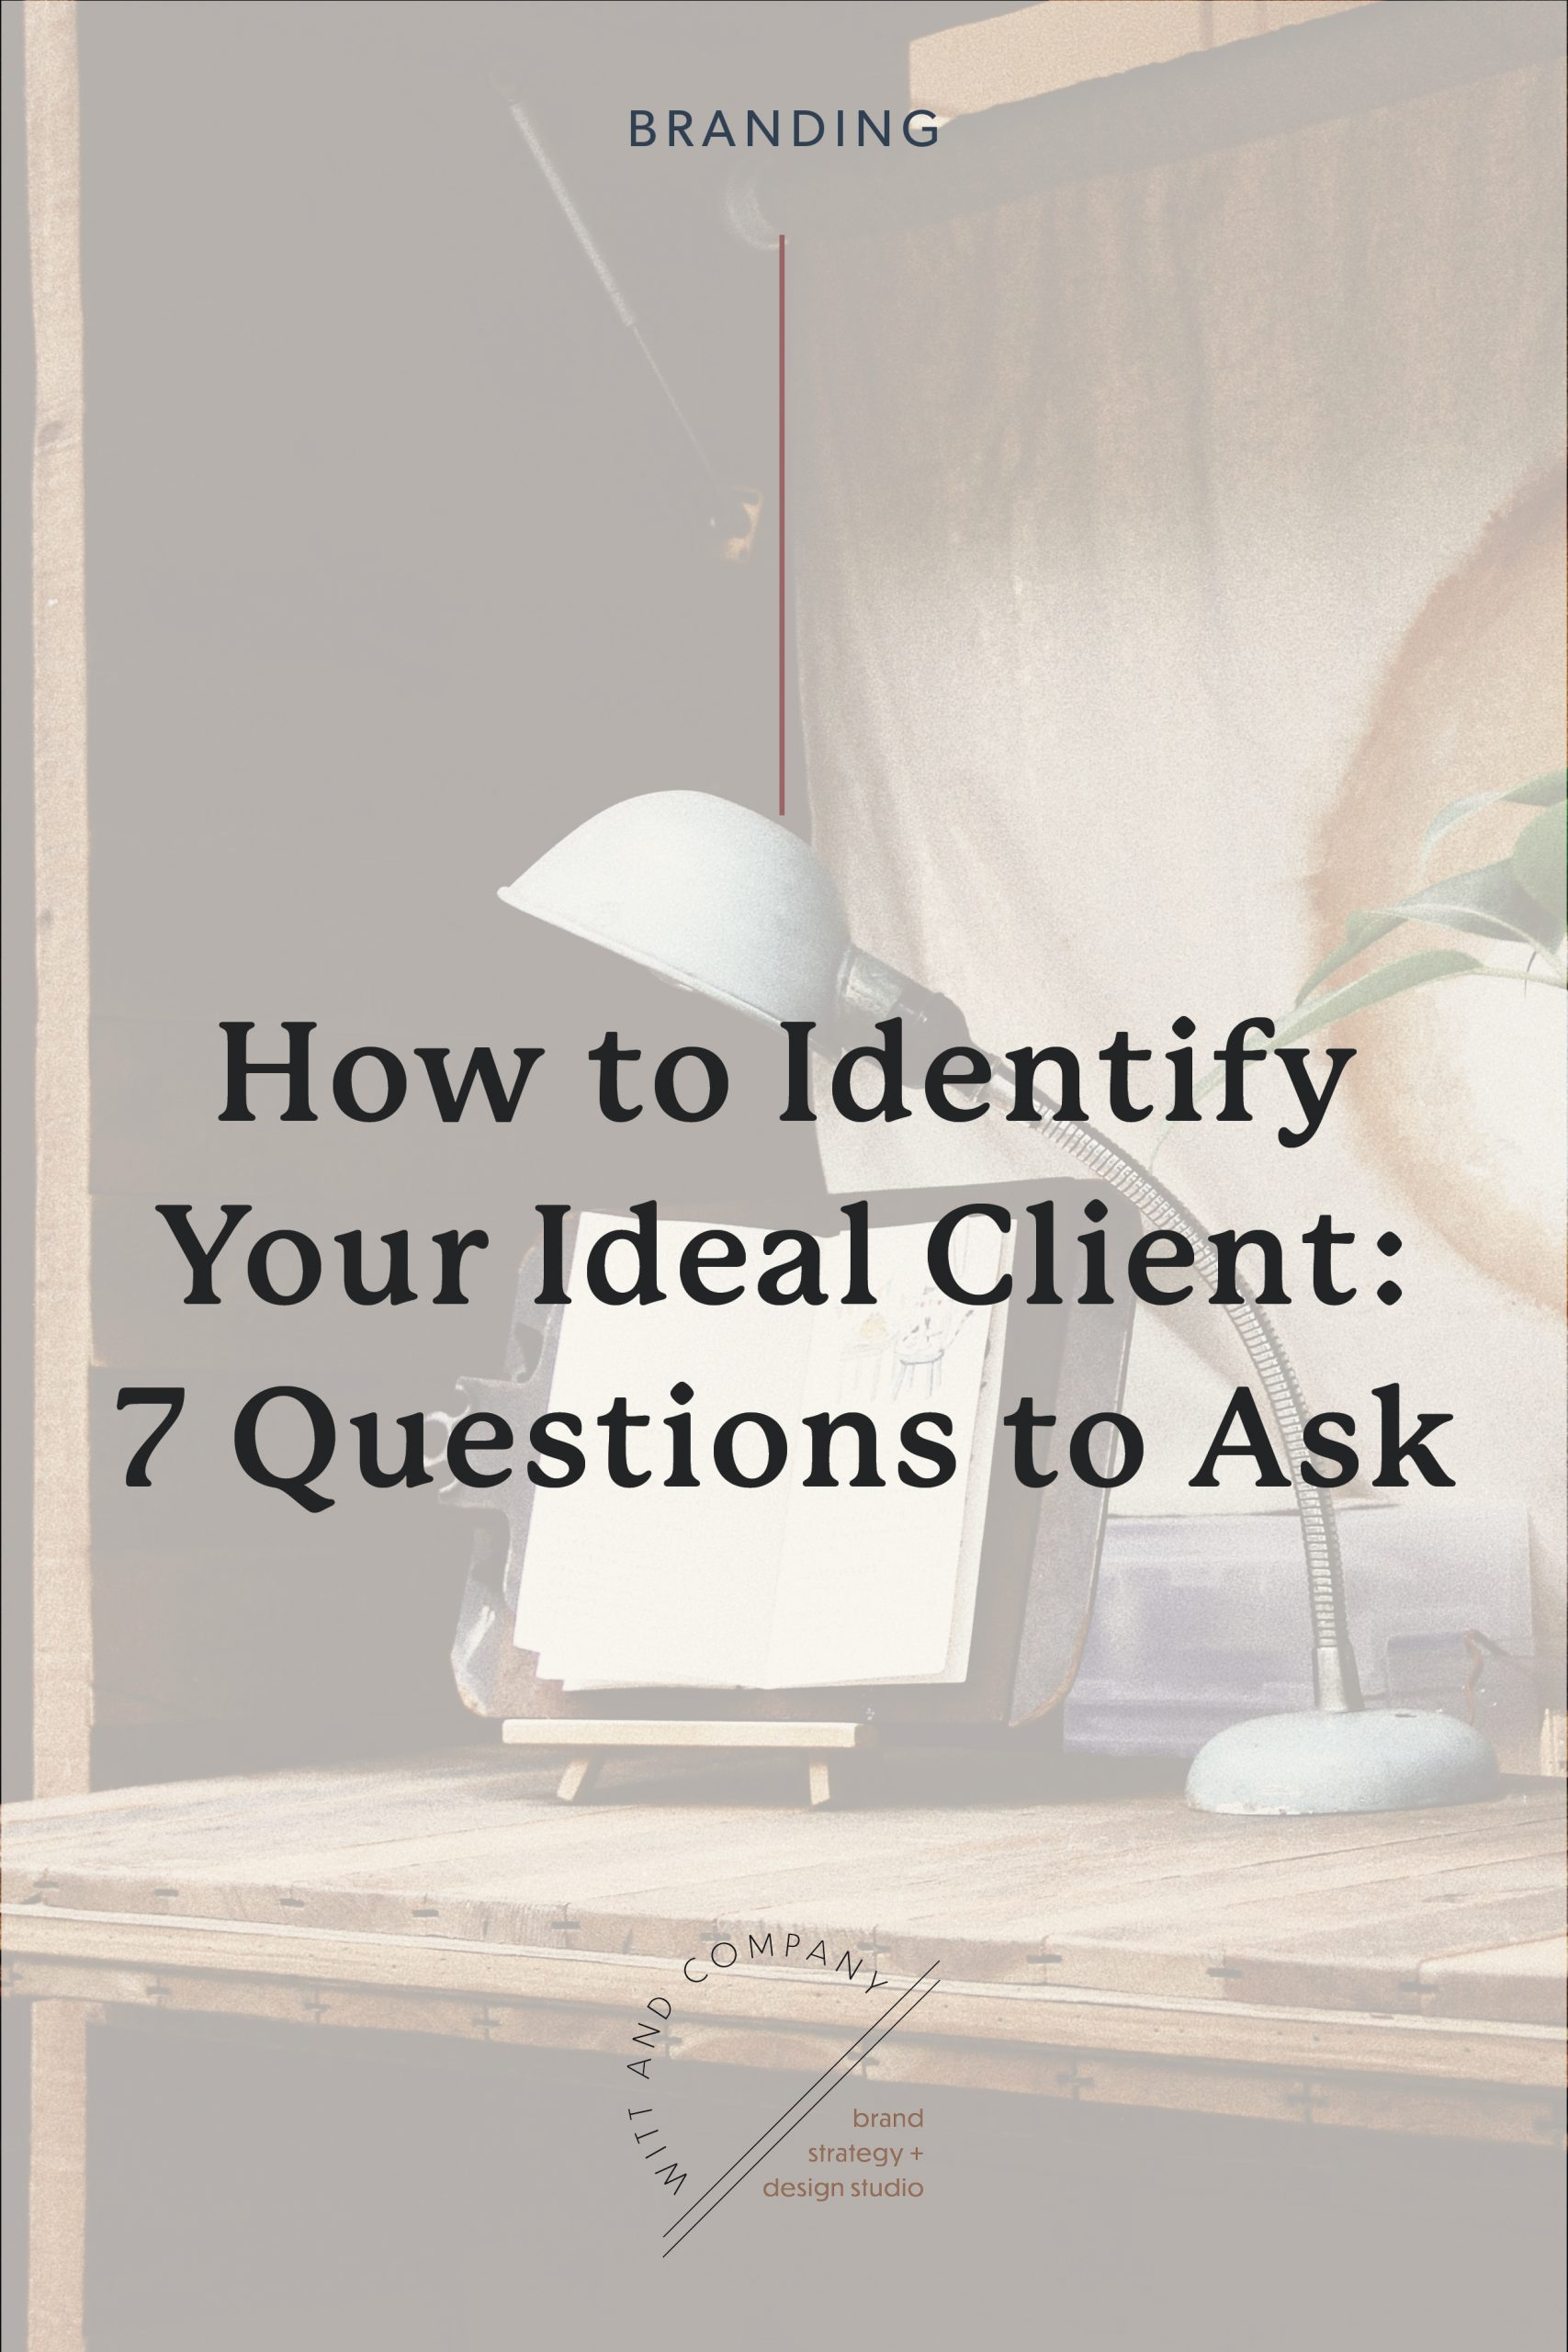 How to Identify Your Ideal Client: Seven Questions to Ask